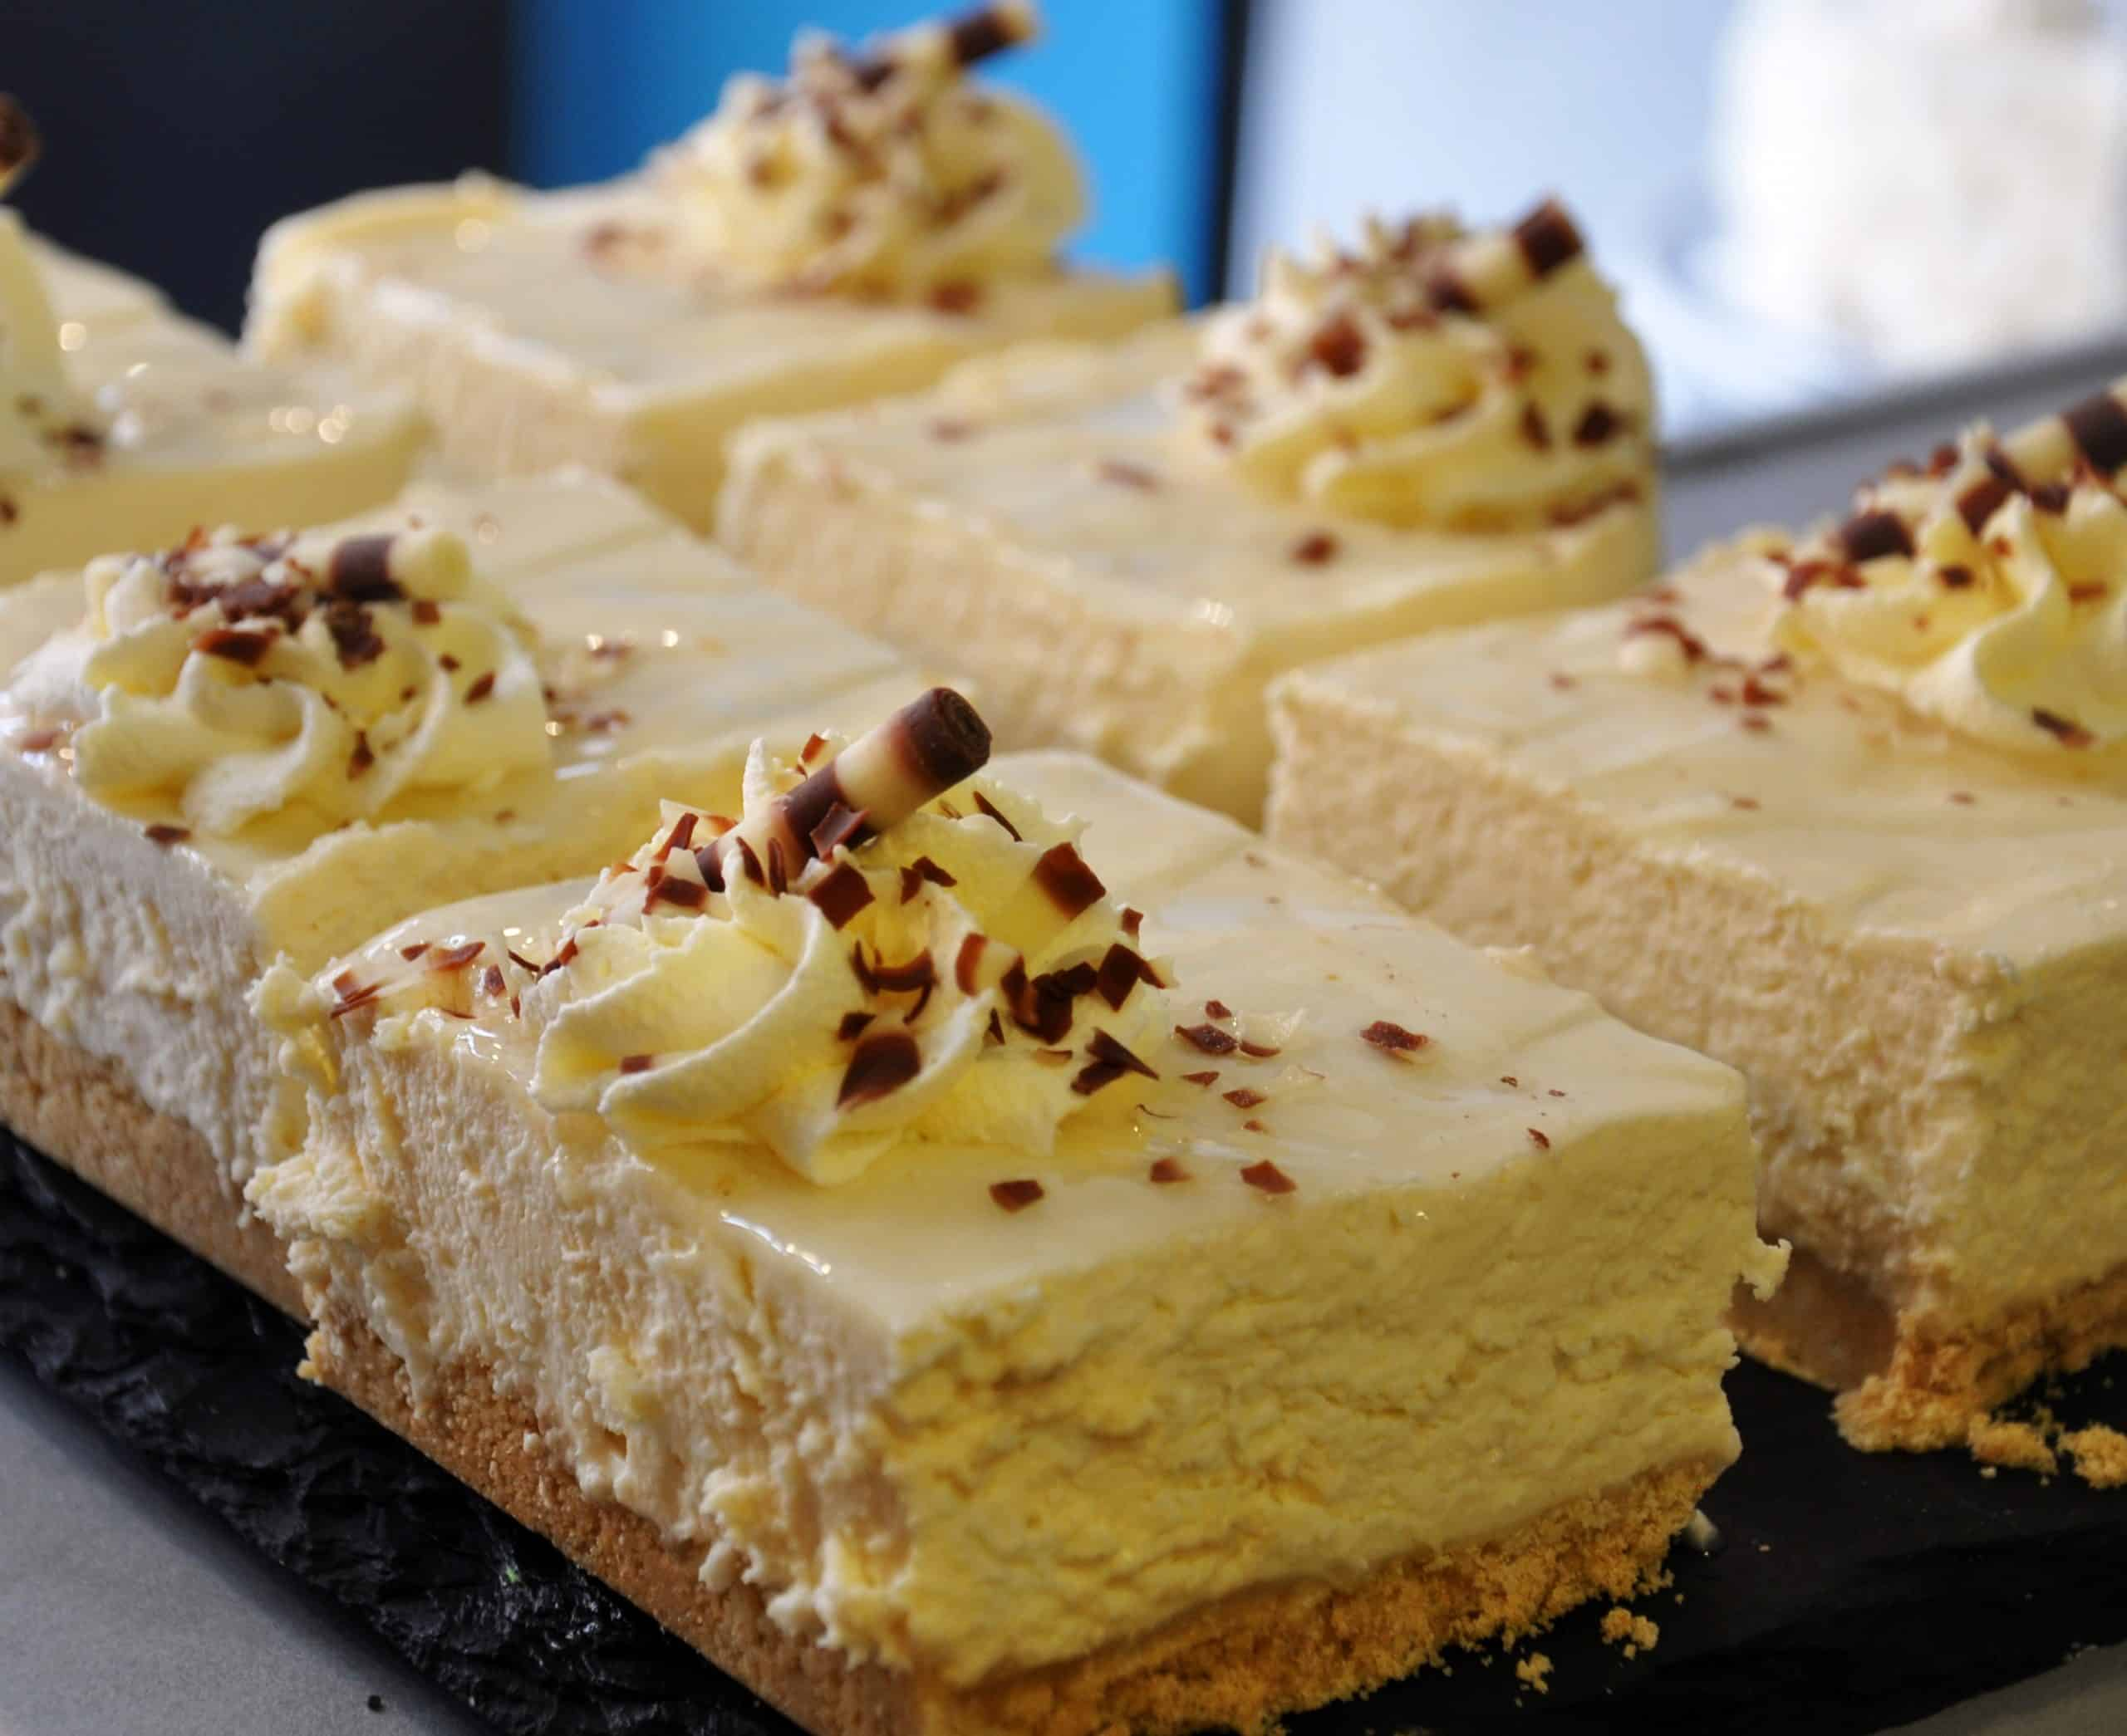 Baileys Cheesecake Slices Mannings Bakery